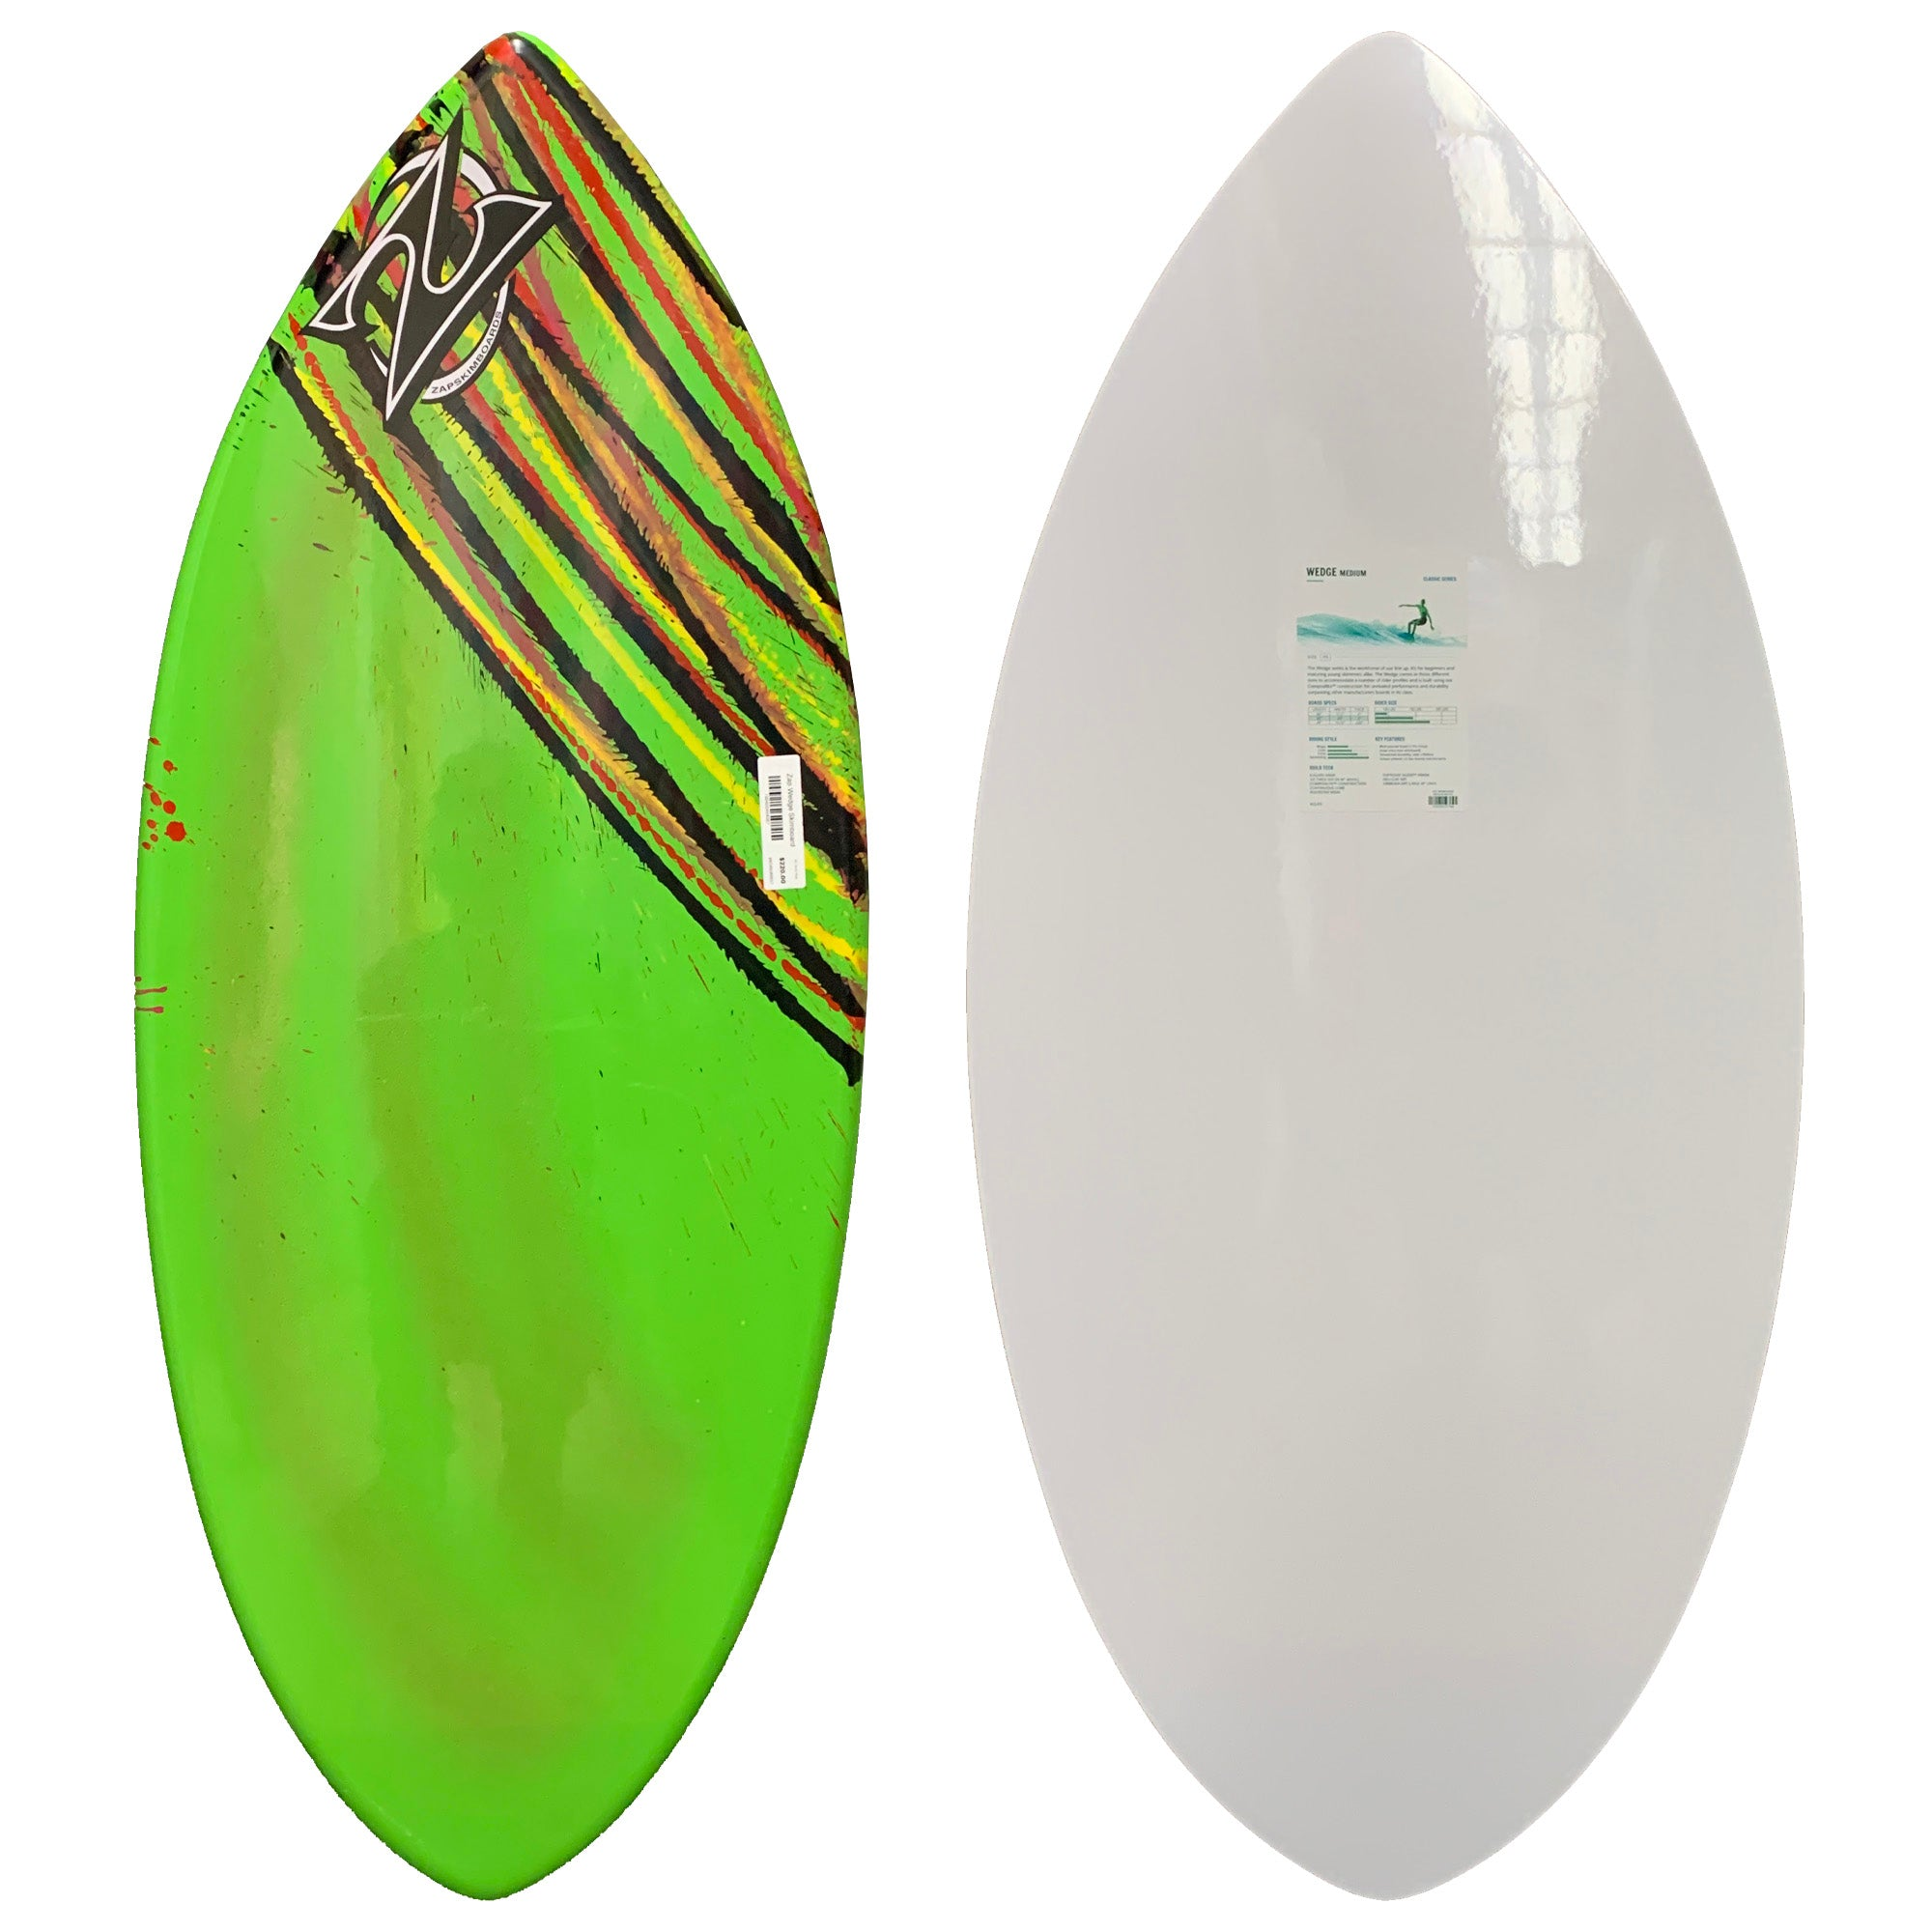 Zap Wedge Skimboard - Green Rasta